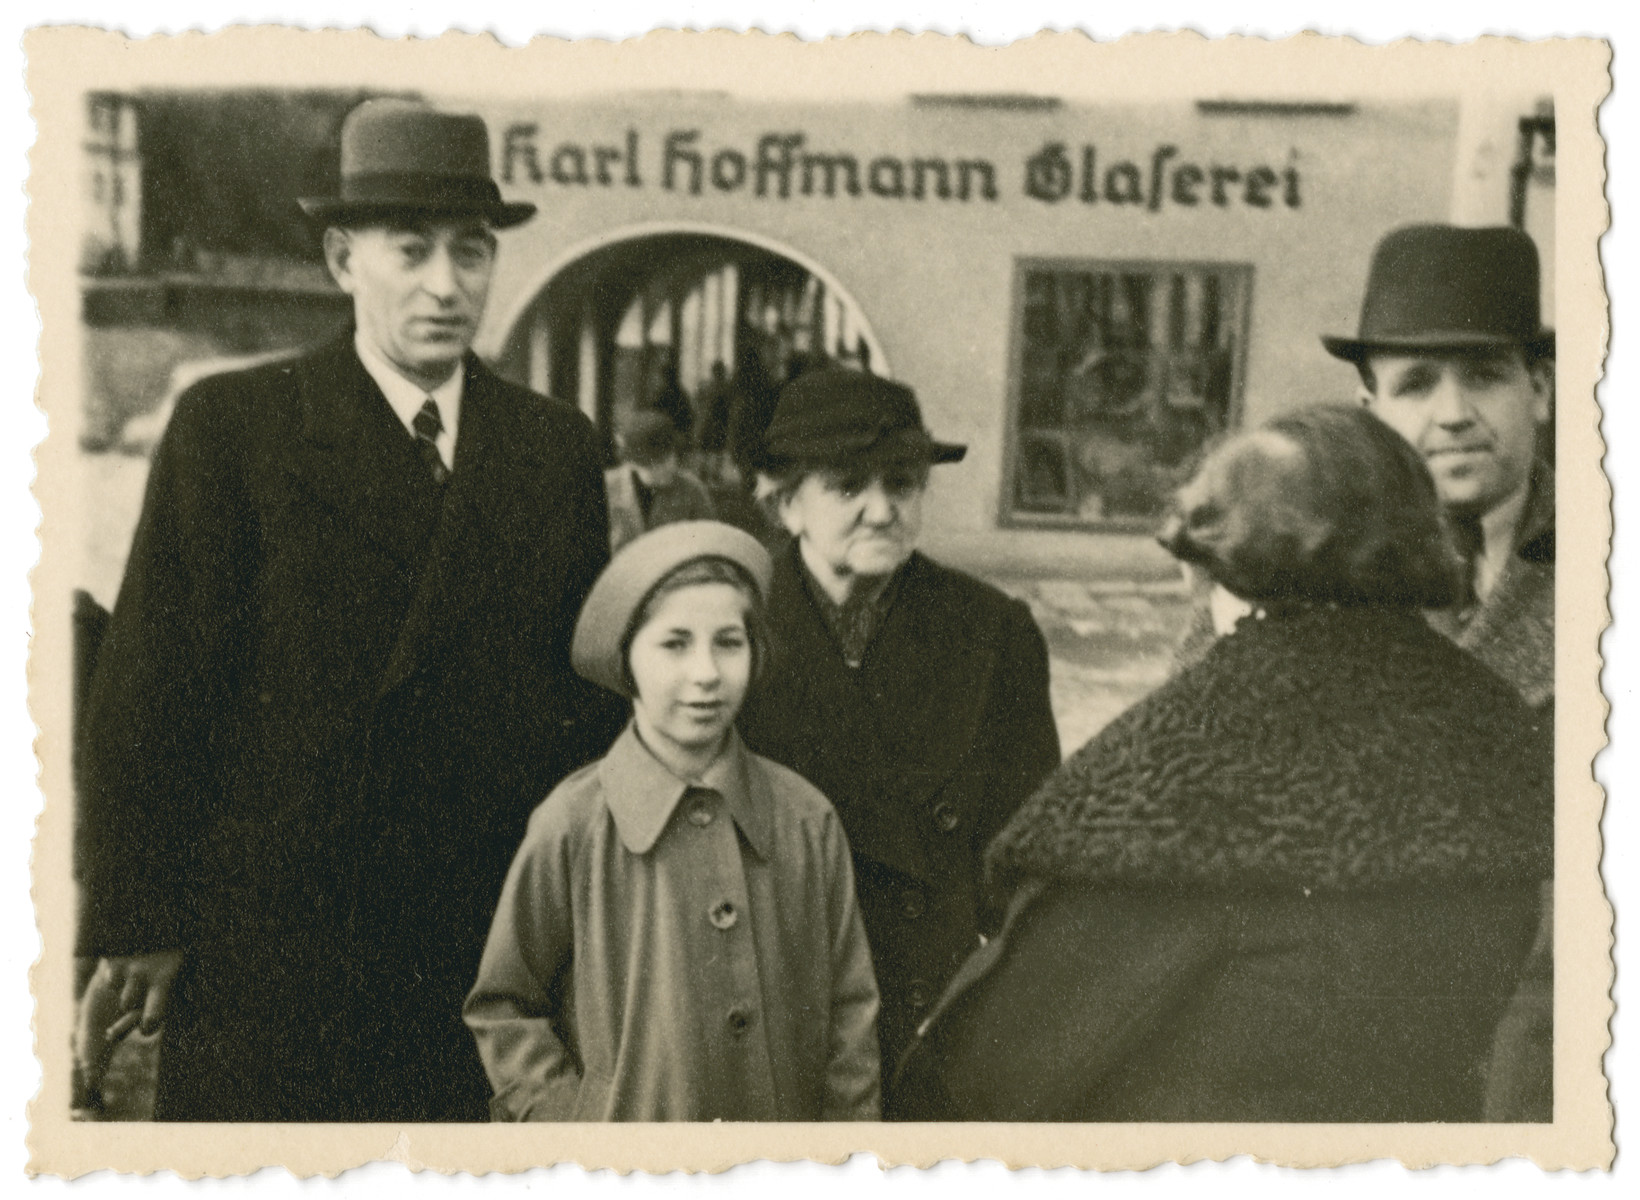 The Pikarski family [extended family of the donor] gathers on a sidealk.   Pictured are Selma Weissblum and her granddaughter Inge Pikarski, Max Pikarski, and Seigfried (Siegfried Weissblum, later in U.S. changed name to Schultz)  Schultz.  The woman whose back is turned is Erna Pikarski nee Weissblum, sister of Julia (Julla) Schleyer who married Hugo, brother of Ilse's mother, Sophie.